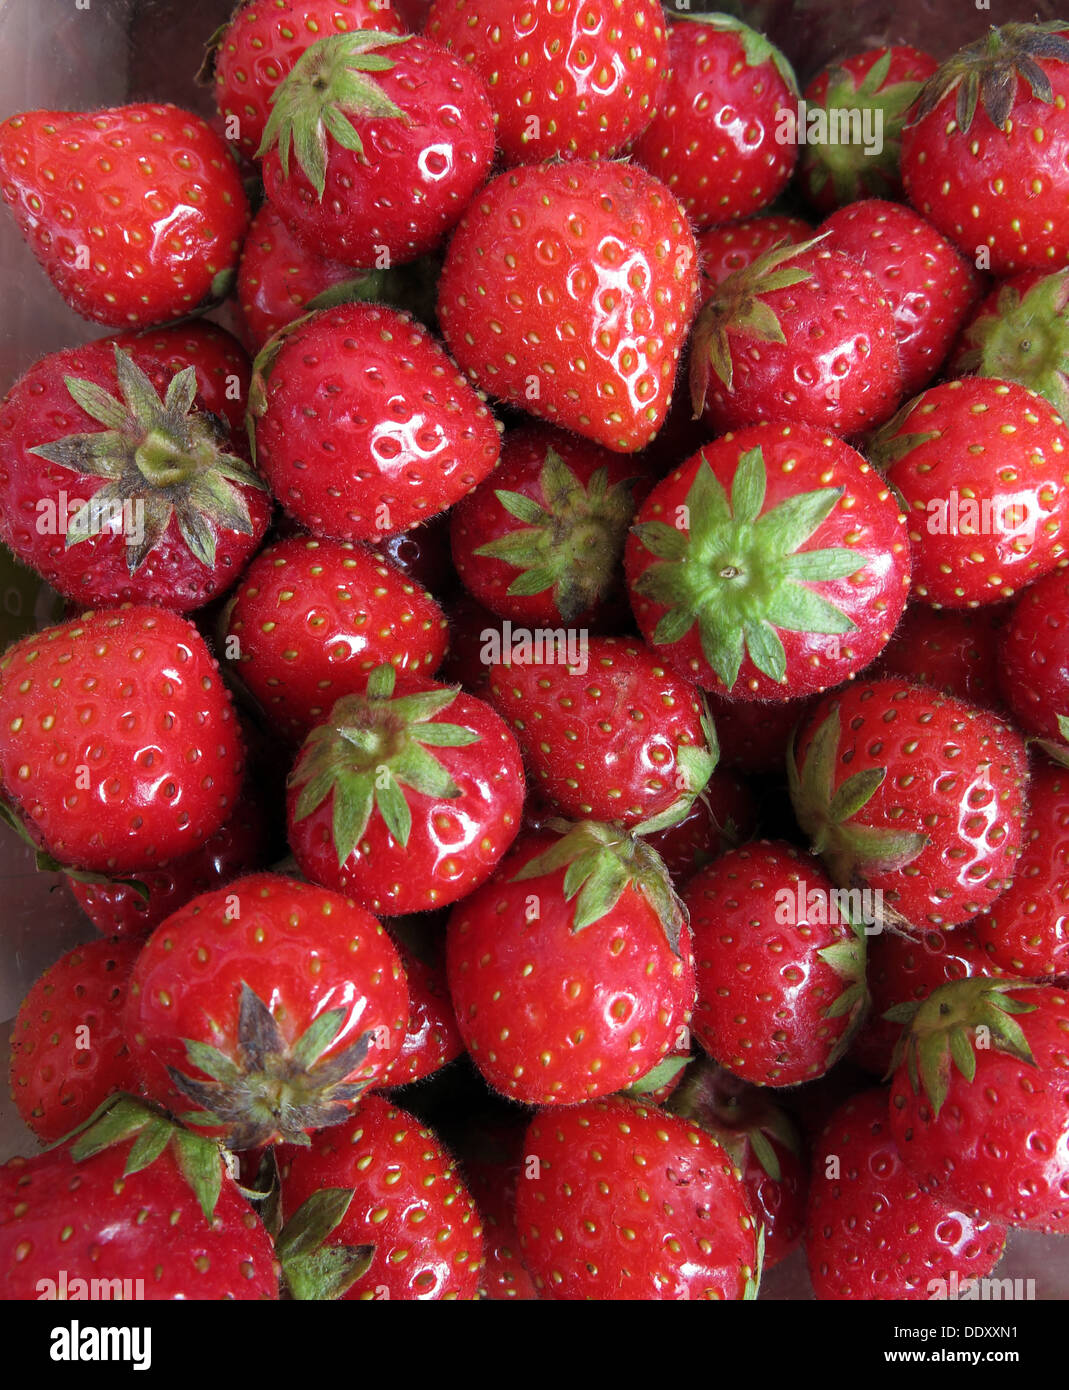 fruit,fruits with stalks,one,of,five a day,healthy,organic,garden,Fragaria × ananassa,hybrid,bright,fruity,juicy texture and,juicy,texture,sweetness,sweet,tasty,dozens,hundreds,5aDay,five,a,day,British,Jam,Five a day,5 a day,Five a day,British Strawberries,British Strawberry,gotonysmith,Jello,preserve,preserves,strawberry,@hotpixuk,hotpixuk,five,a,day,5,5aday,fruit,Strawberry Jam,Buy Pictures of,Buy Images Of,Low Fat Diet,Five A Day